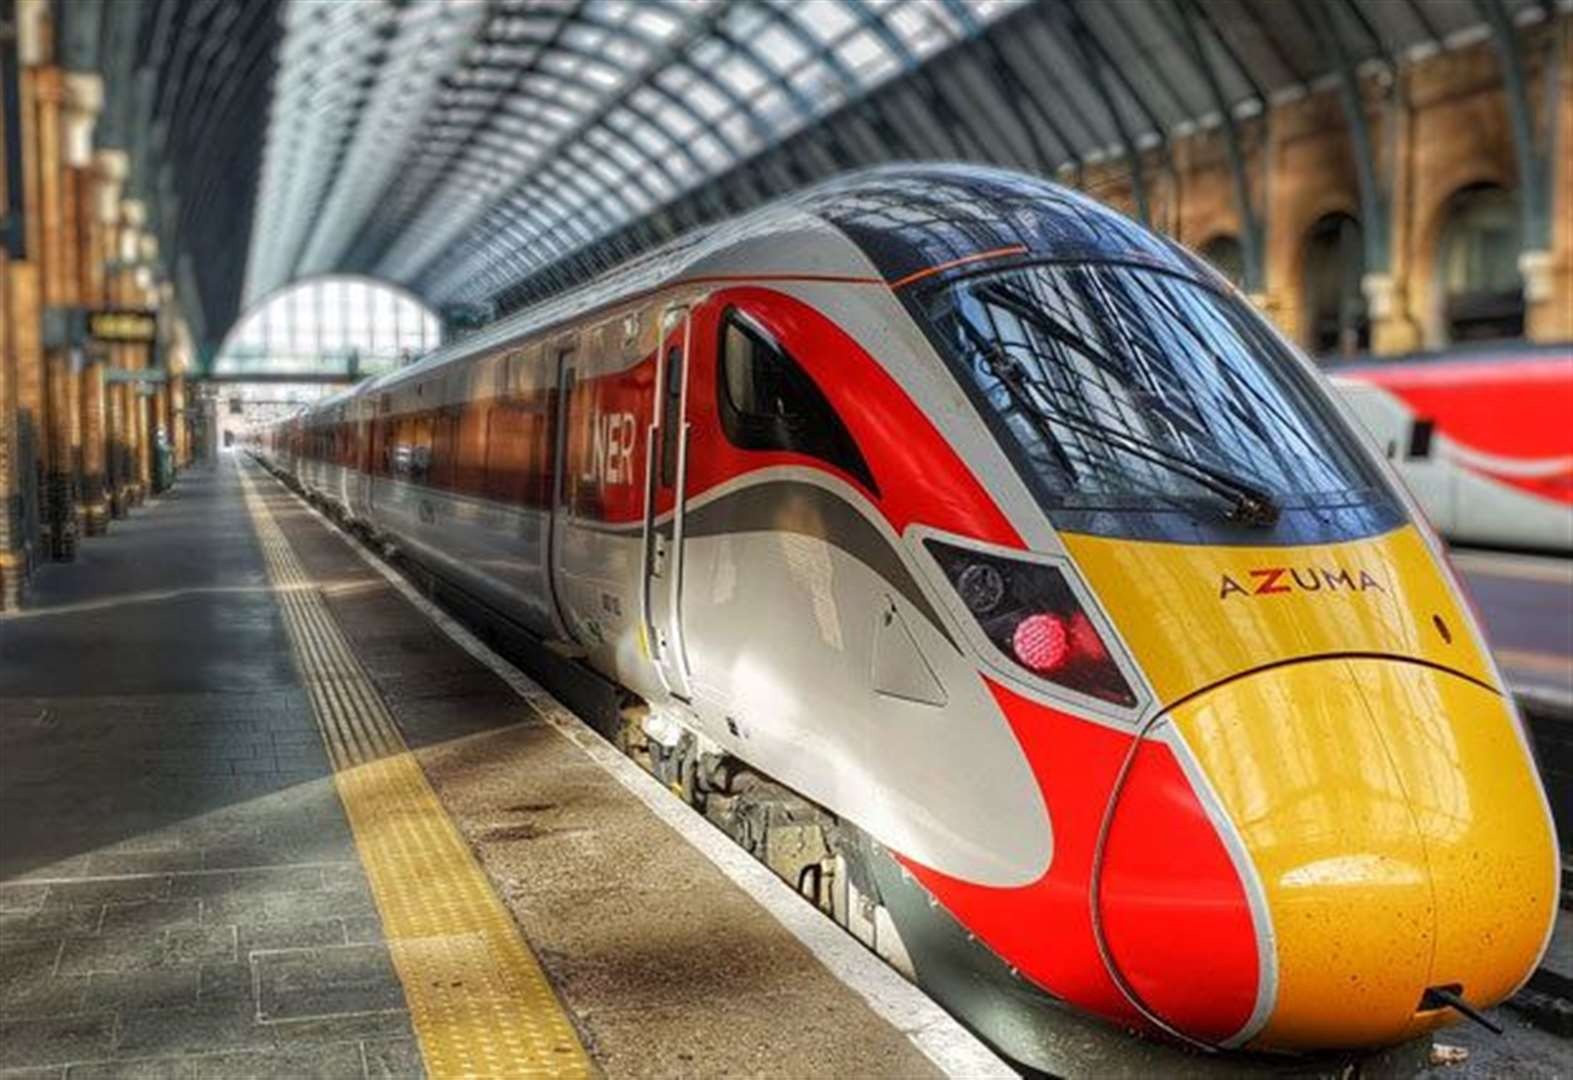 South Kesteven now linked by futuristic Azuma locomotive that look like Japanese bullet trains